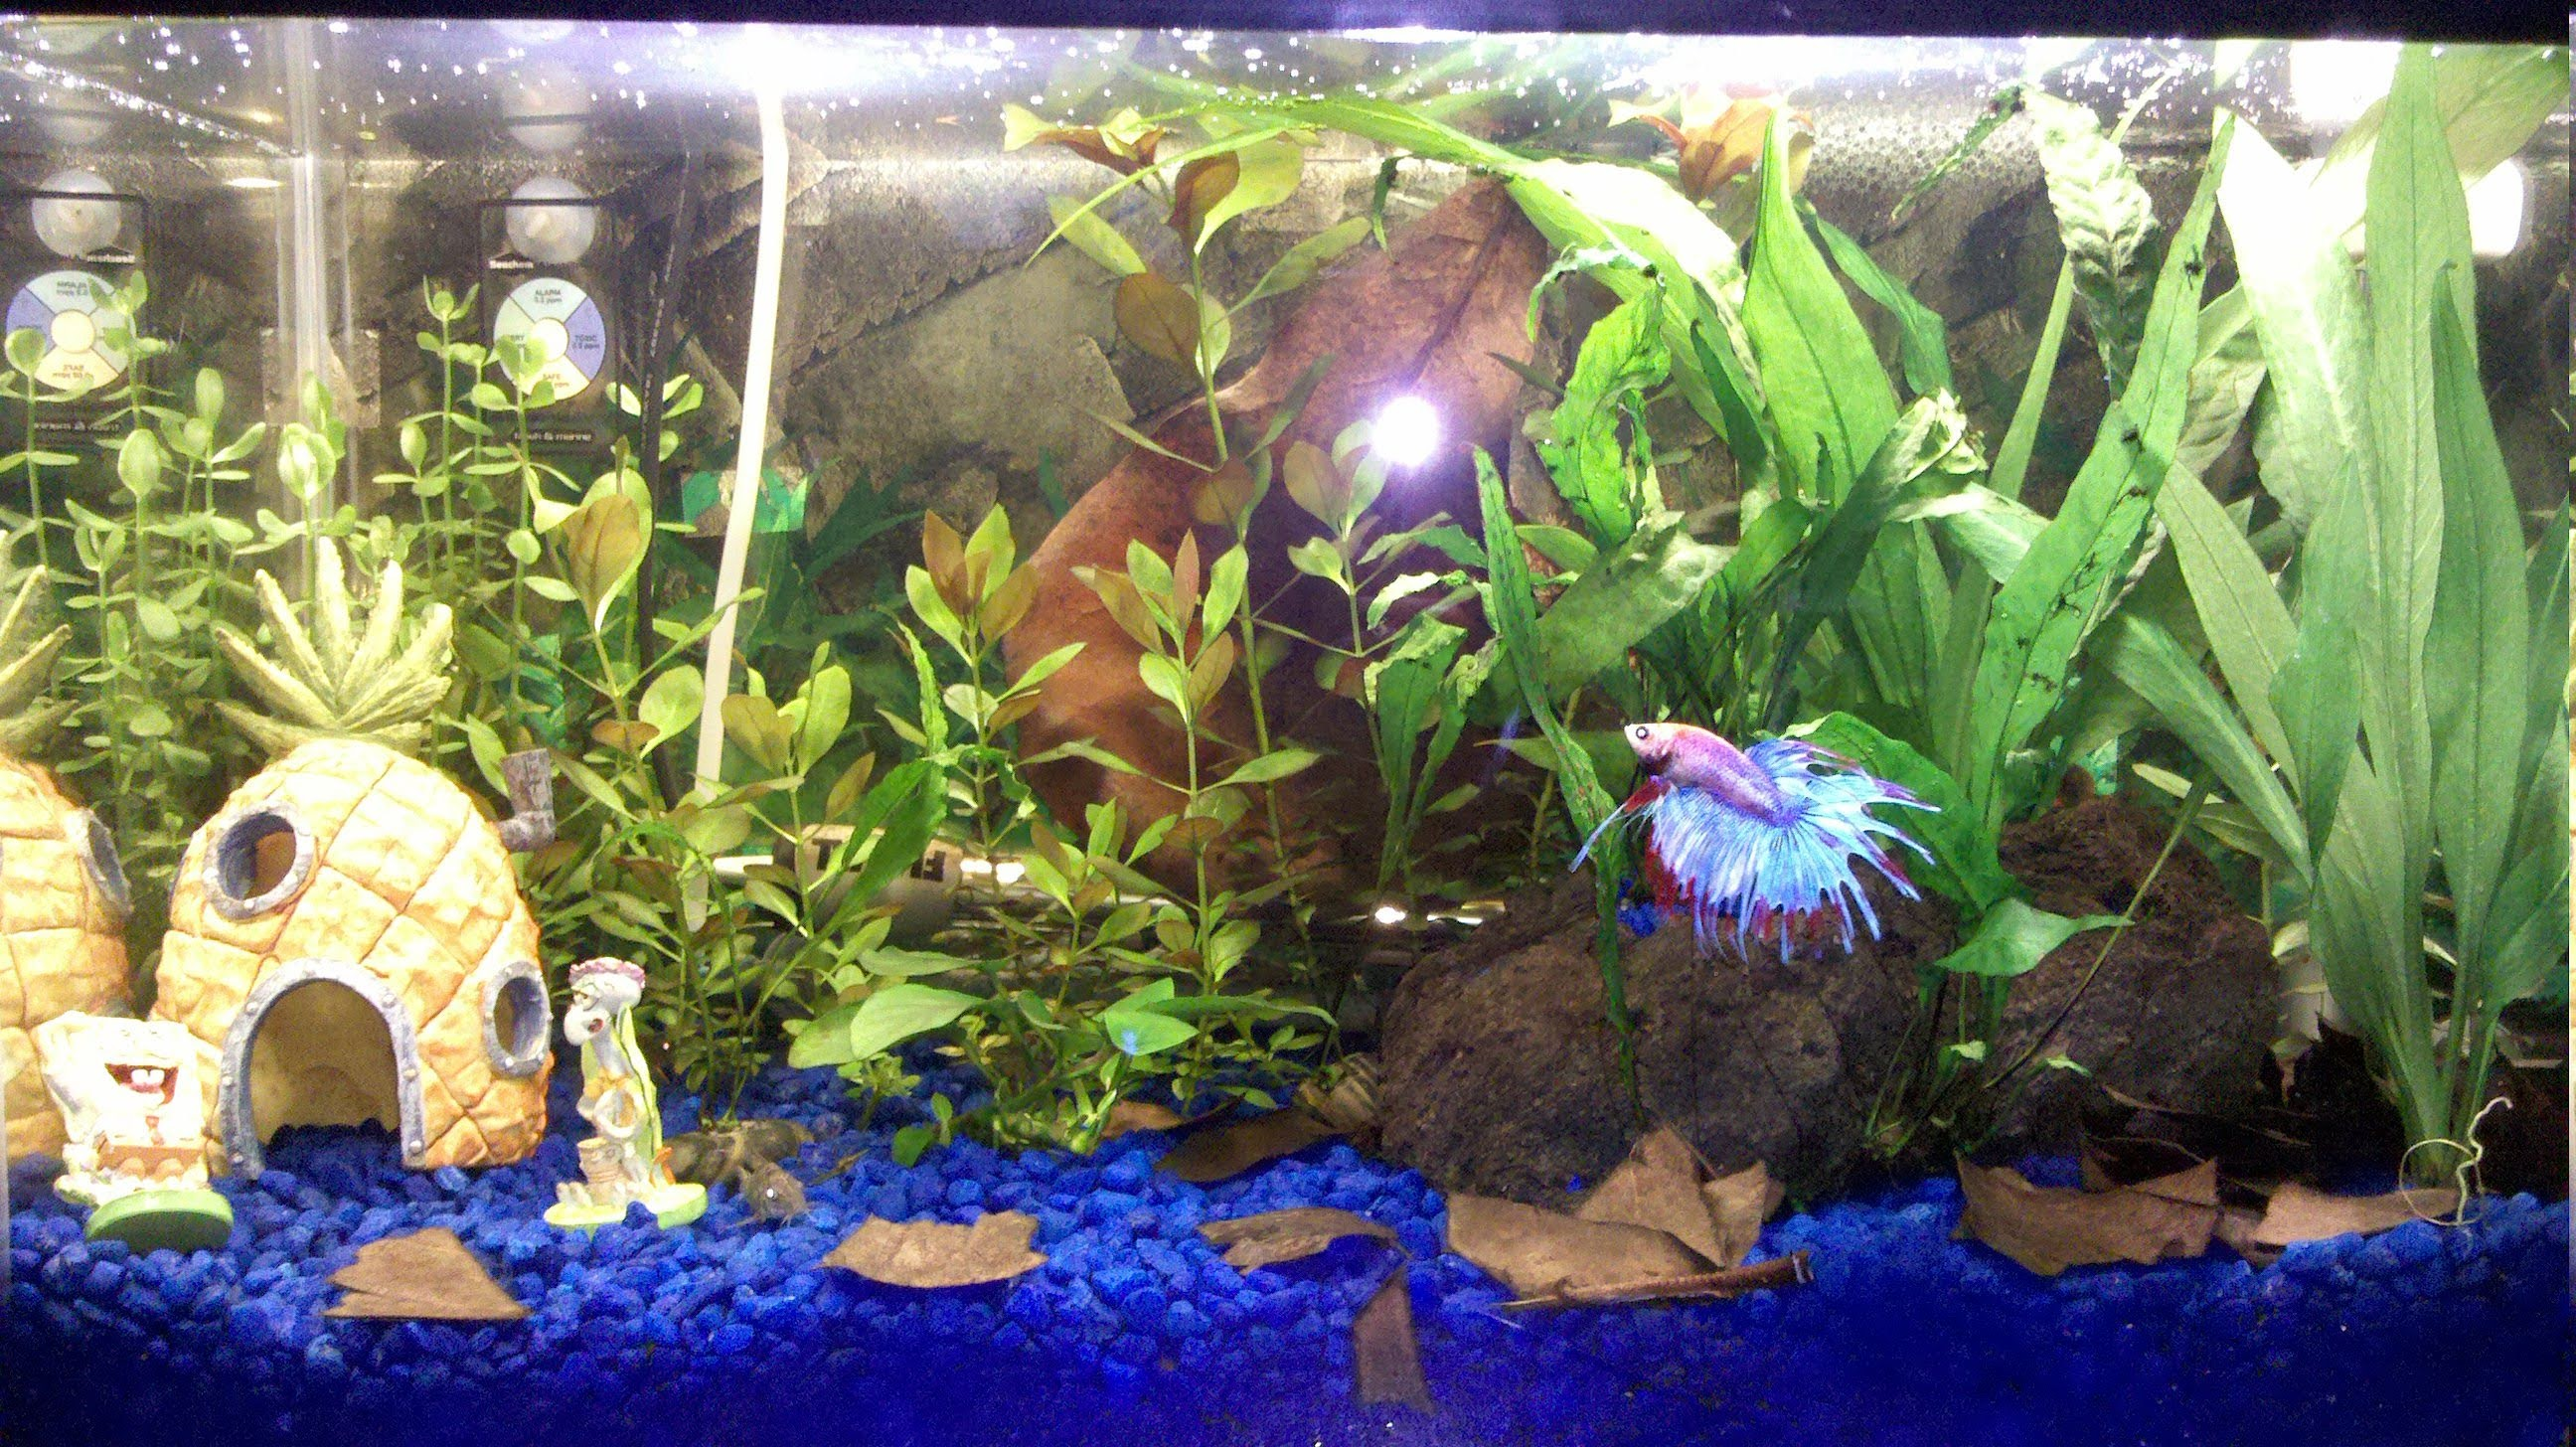 Fish aquarium edmonton - Again Anyone Recommend Any Plants I Should Look To Order For This Tank Want To Order From These Forums